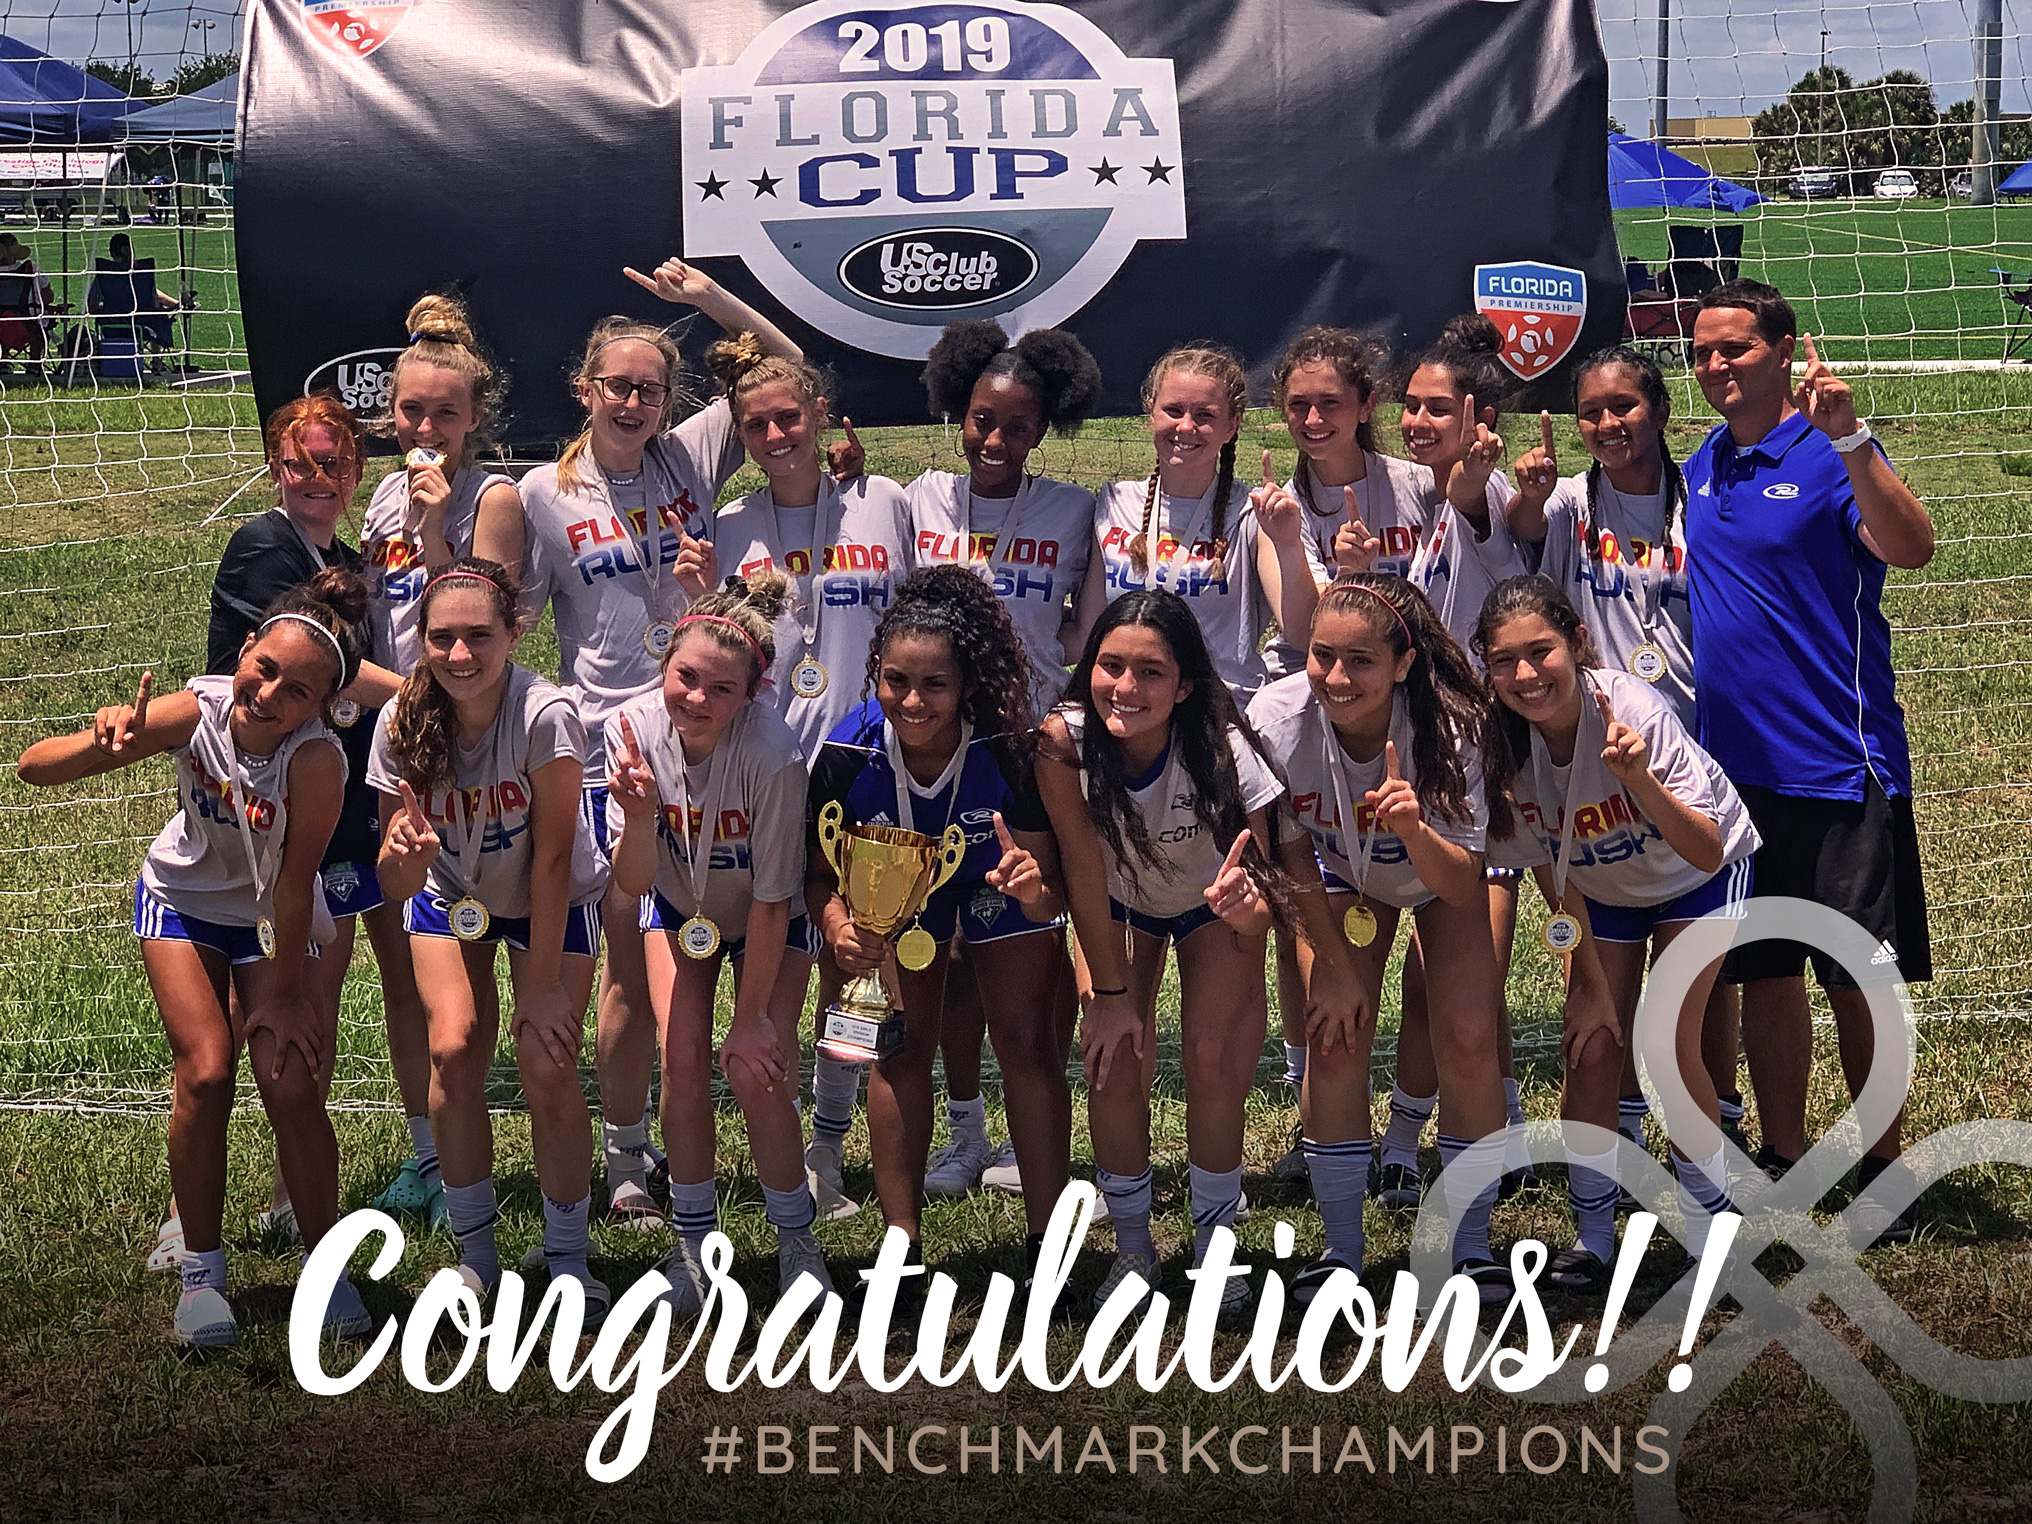 Benchmark International's Florida Rush Girls 04 Won the Florida Cup!